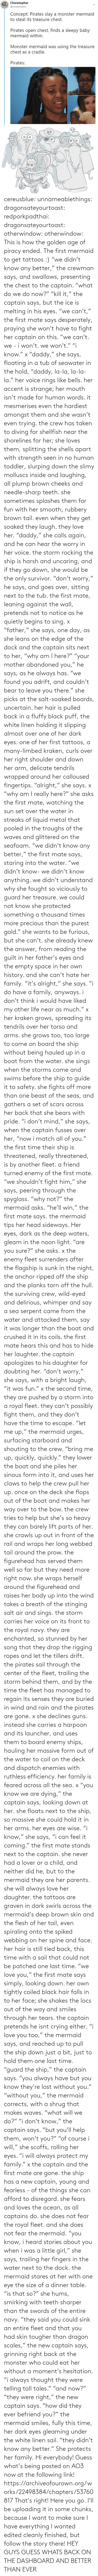 "Link: cereusblue: unnameablethings:   dragonsateyourtoast:  redporkpadthai:  dragonsateyourtoast:  otherwindow:  otherwindow: This is how the golden age of piracy ended. The first mermaid to get tattoos :)   ""we didn't know any better,"" the crewman says, and swallows, presenting the chest to the captain. ""what do we do now?"" ""kill it,"" the captain says, but the ice is melting in his eyes. ""we can't,"" the first mate says desperately, praying she won't have to fight her captain on this. ""we can't. we - i won't. we won't."" ""i know."" x ""daddy,"" she says, floating in a tub of seawater in the hold, ""daddy, la-la, la-la-la."" her voice rings like bells. her accent is strange; her mouth isn't made for human words. it mesmerises even the hardiest amongst them and she wasn't even trying. the crew has taken to diving for shellfish near the shorelines for her; she loves them, splitting the shells apart with strength seen in no human toddler, slurping down the slimy molluscs inside and laughing, all plump brown cheeks and needle-sharp teeth. she sometimes splashes them for fun with her smooth, rubbery brown tail. even when they get soaked they laugh. they love her. ""daddy,"" she calls again, and he can hear the worry in her voice. the storm rocking the ship is harsh and uncaring, and if they go down, she would be the only survivor. ""don't worry,"" he says, and goes over, sitting next to the tub. the first mate, leaning against the wall, pretends not to notice as he quietly begins to sing. x ""father,"" she says, one day, as she leans on the edge of the dock and the captain sits next to her, ""why am I here?"" ""your mother abandoned you,"" he says, as he always has. ""we found you adrift, and couldn't bear to leave you there."" she picks at the salt-soaked boards, uncertain. her hair is pulled back in a fluffy black puff, the white linen holding it slipping almost over one of her dark eyes. one of her first tattoos, a many-limbed kraken, curls over her right shoulder and down her arm, delicate tendrils wrapped around her calloused fingertips. ""alright,"" she says. x ""why am I really here?"" she asks the first mate, watching the sun set over the water in streaks of liquid metal that pooled in the troughs of the waves and glittered on the seafoam. ""we didn't know any better,"" the first mate says, staring into the water. ""we didn't know- we didn't know anything. we didn't understand why she fought so viciously to guard her treasure. we could not know she protected something a thousand times more precious than the purest gold."" she wants to be furious, but she can't. she already knew the answer, from reading the guilt in her father's eyes and the empty space in her own history. and she can't hate her family. ""it's alright,"" she says. ""i do have a family, anyways. i don't think i would have liked my other life near as much."" x her kraken grows, spreading its tendrils over her torso and arms. she grows too, too large to come on board the ship without being hauled up in a boat from the water. she sings when the storms come and swims before the ship to guide it to safety. she fights off more than one beast of the seas, and gathers a set of scars across her back that she bears with pride. ""i don't mind,"" she says, when the captain fusses over her, ""now i match all of you."" the first time their ship is threatened, really threatened, is by another fleet. a friend turned enemy of the first mate. ""we shouldn't fight him,"" she says, peering through the spyglass. ""why not?"" the mermaid asks. ""he'll win,"" the first mate says. the mermaid tips her head sideways. Her eyes, dark as the deep waters, gleam in the noon light. ""are you sure?"" she asks. x the enemy fleet surrenders after the flagship is sunk in the night, the anchor ripped off the ship and the planks torn off the hull. the surviving crew, wild-eyed and delirious, whimper and say a sea serpent came from the water and attacked them, say it was longer than the boat and crushed it in its coils. the first mate hears this and has to hide her laughter. the captain apologizes to his daughter for doubting her. ""don't worry,"" she says, with a bright laugh, ""it was fun."" x the second time, they are pushed by a storm into a royal fleet. they can't possibly fight them, and they don't have the time to escape. ""let me up,"" the mermaid urges, surfacing starboard and shouting to the crew. ""bring me up, quickly, quickly."" they lower the boat and she piles her sinous form into it, and uses her claws to help the crew pull her up. once on the deck she flops out of the boat and makes her way over to the bow. the crew tries to help but she's so heavy they can barely lift parts of her. she crawls up out in front of the rail and wraps her long webbed tail around the prow. the figurehead has served them well so far but they need more right now. she wraps herself around the figurehead and raises her body up into the wind takes a breath of the stinging salt air and sings. the storm carries her voice on its front to the royal navy. they are enchanted, so stunned by her song that they drop the rigging ropes and let the tillers drift. the pirates sail through the center of the fleet, trailing the storm behind them, and by the time the fleet has managed to regain its senses they are buried in wind and rain and the pirates are gone. x she declines guns. instead she carries a harpoon and its launcher, and uses them to board enemy ships, hauling her massive form out of the water to coil on the deck and dispatch enemies with ruthless efficiency. her family is feared across all the sea. x ""you know we are dying,"" the captain says, looking down at her. she floats next to the ship, so massive she could hold it in her arms. her eyes are wise. ""i know,"" she says, ""i can feel it coming."" the first mate stands next to the captain. she never had a lover or a child, and neither did he, but to the mermaid they are her parents. she will always love her daughter. the tattoos are graven in dark swirls across the mermaid's deep brown skin and the flesh of her tail, even spiraling onto the spiked webbing on her spine and face. her hair is still tied back, this time with a sail that could not be patched one last time.  ""we love you,"" the first mate says simply, looking down. her own tightly coiled black hair falls in to her face; she shakes the locs out of the way and smiles through her tears. the captain pretends he isnt crying either. ""i love you too,"" the mermaid says, and reached up to pull the ship down just a bit, just to hold them one last time. ""guard the ship,"" the captain says. ""you always have but you know they're lost without you."" ""without you,"" the mermaid corrects, with a shrug that makes waves. ""what will we do?"" ""i don't know,"" the captain says. ""but you'll help them, won't you?"" ""of course i will,"" she scoffs, rolling her eyes. ""i will always protect my family."" x the captain and the first mate are gone. the ship has a new captain, young and fearless - of the things she can afford to disregard. she fears and loves the ocean, as all captains do. she does not fear the royal fleet. and she does not fear the mermaid. ""you know, i heard stories about you when i was a little girl,"" she says, trailing her fingers in the water next to the dock. the mermaid stares at her with one eye the size of a dinner table. ""is that so?"" she hums, smirking with teeth sharper than the swords of the entire navy. ""they said you could sink an entire fleet and that you had skin tougher than dragon scales,"" the new captain says, grinning right back at the monster who could eat her without a moment's hesitation. ""i always thought they were telling tall tales."" ""and now?"" ""they were right,"" the new captain says. ""how did they ever befriend you?"" the mermaid smiles, fully this time, her dark eyes gleaming under the white linen sail. ""they didn't know any better.""  She protects her family.  Hi everybody! Guess what's being posted on AO3 now at the following link! https://archiveofourown.org/works/22498384/chapters/53760817 That's right! Here you go. I'll be uploading it in some chunks, because I want to make sure I have everything I wanted edited cleanly finished, but follow the story there!     HEY GUYS GUESS WHATS BACK ON THE DASHBOARD AND BETTER THAN EVER"